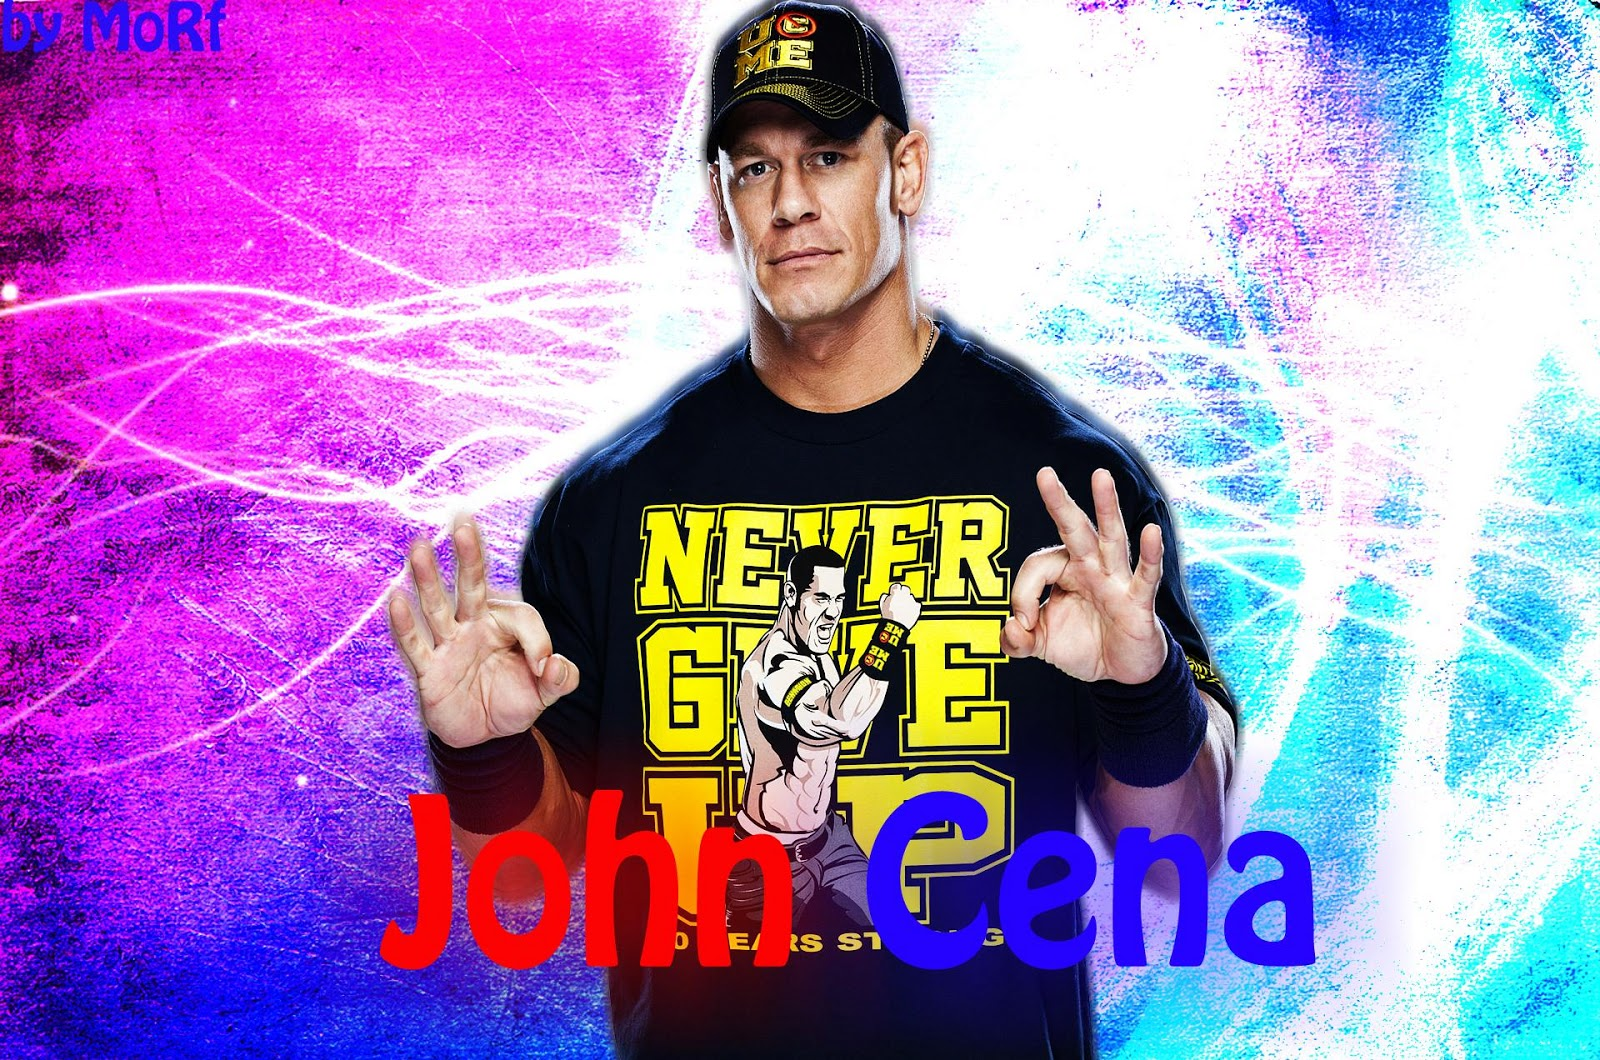 Wrestling Super Stars John Cena New HD Wallpaper 2013 1600x1060